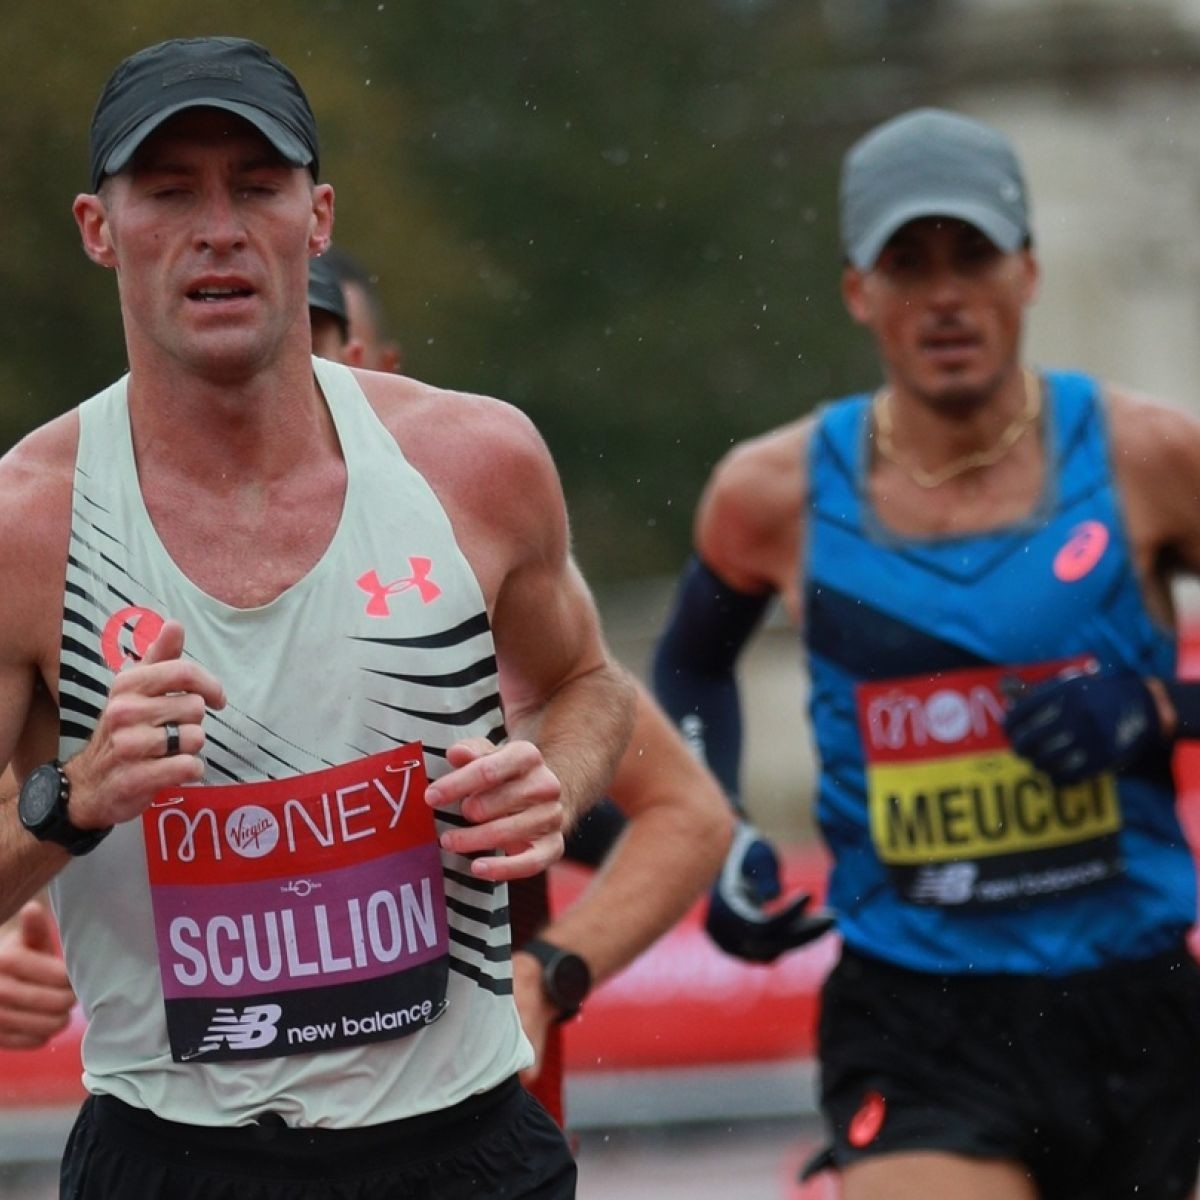 Stephen Scullion sets new Irish Marathon record in London Marathon